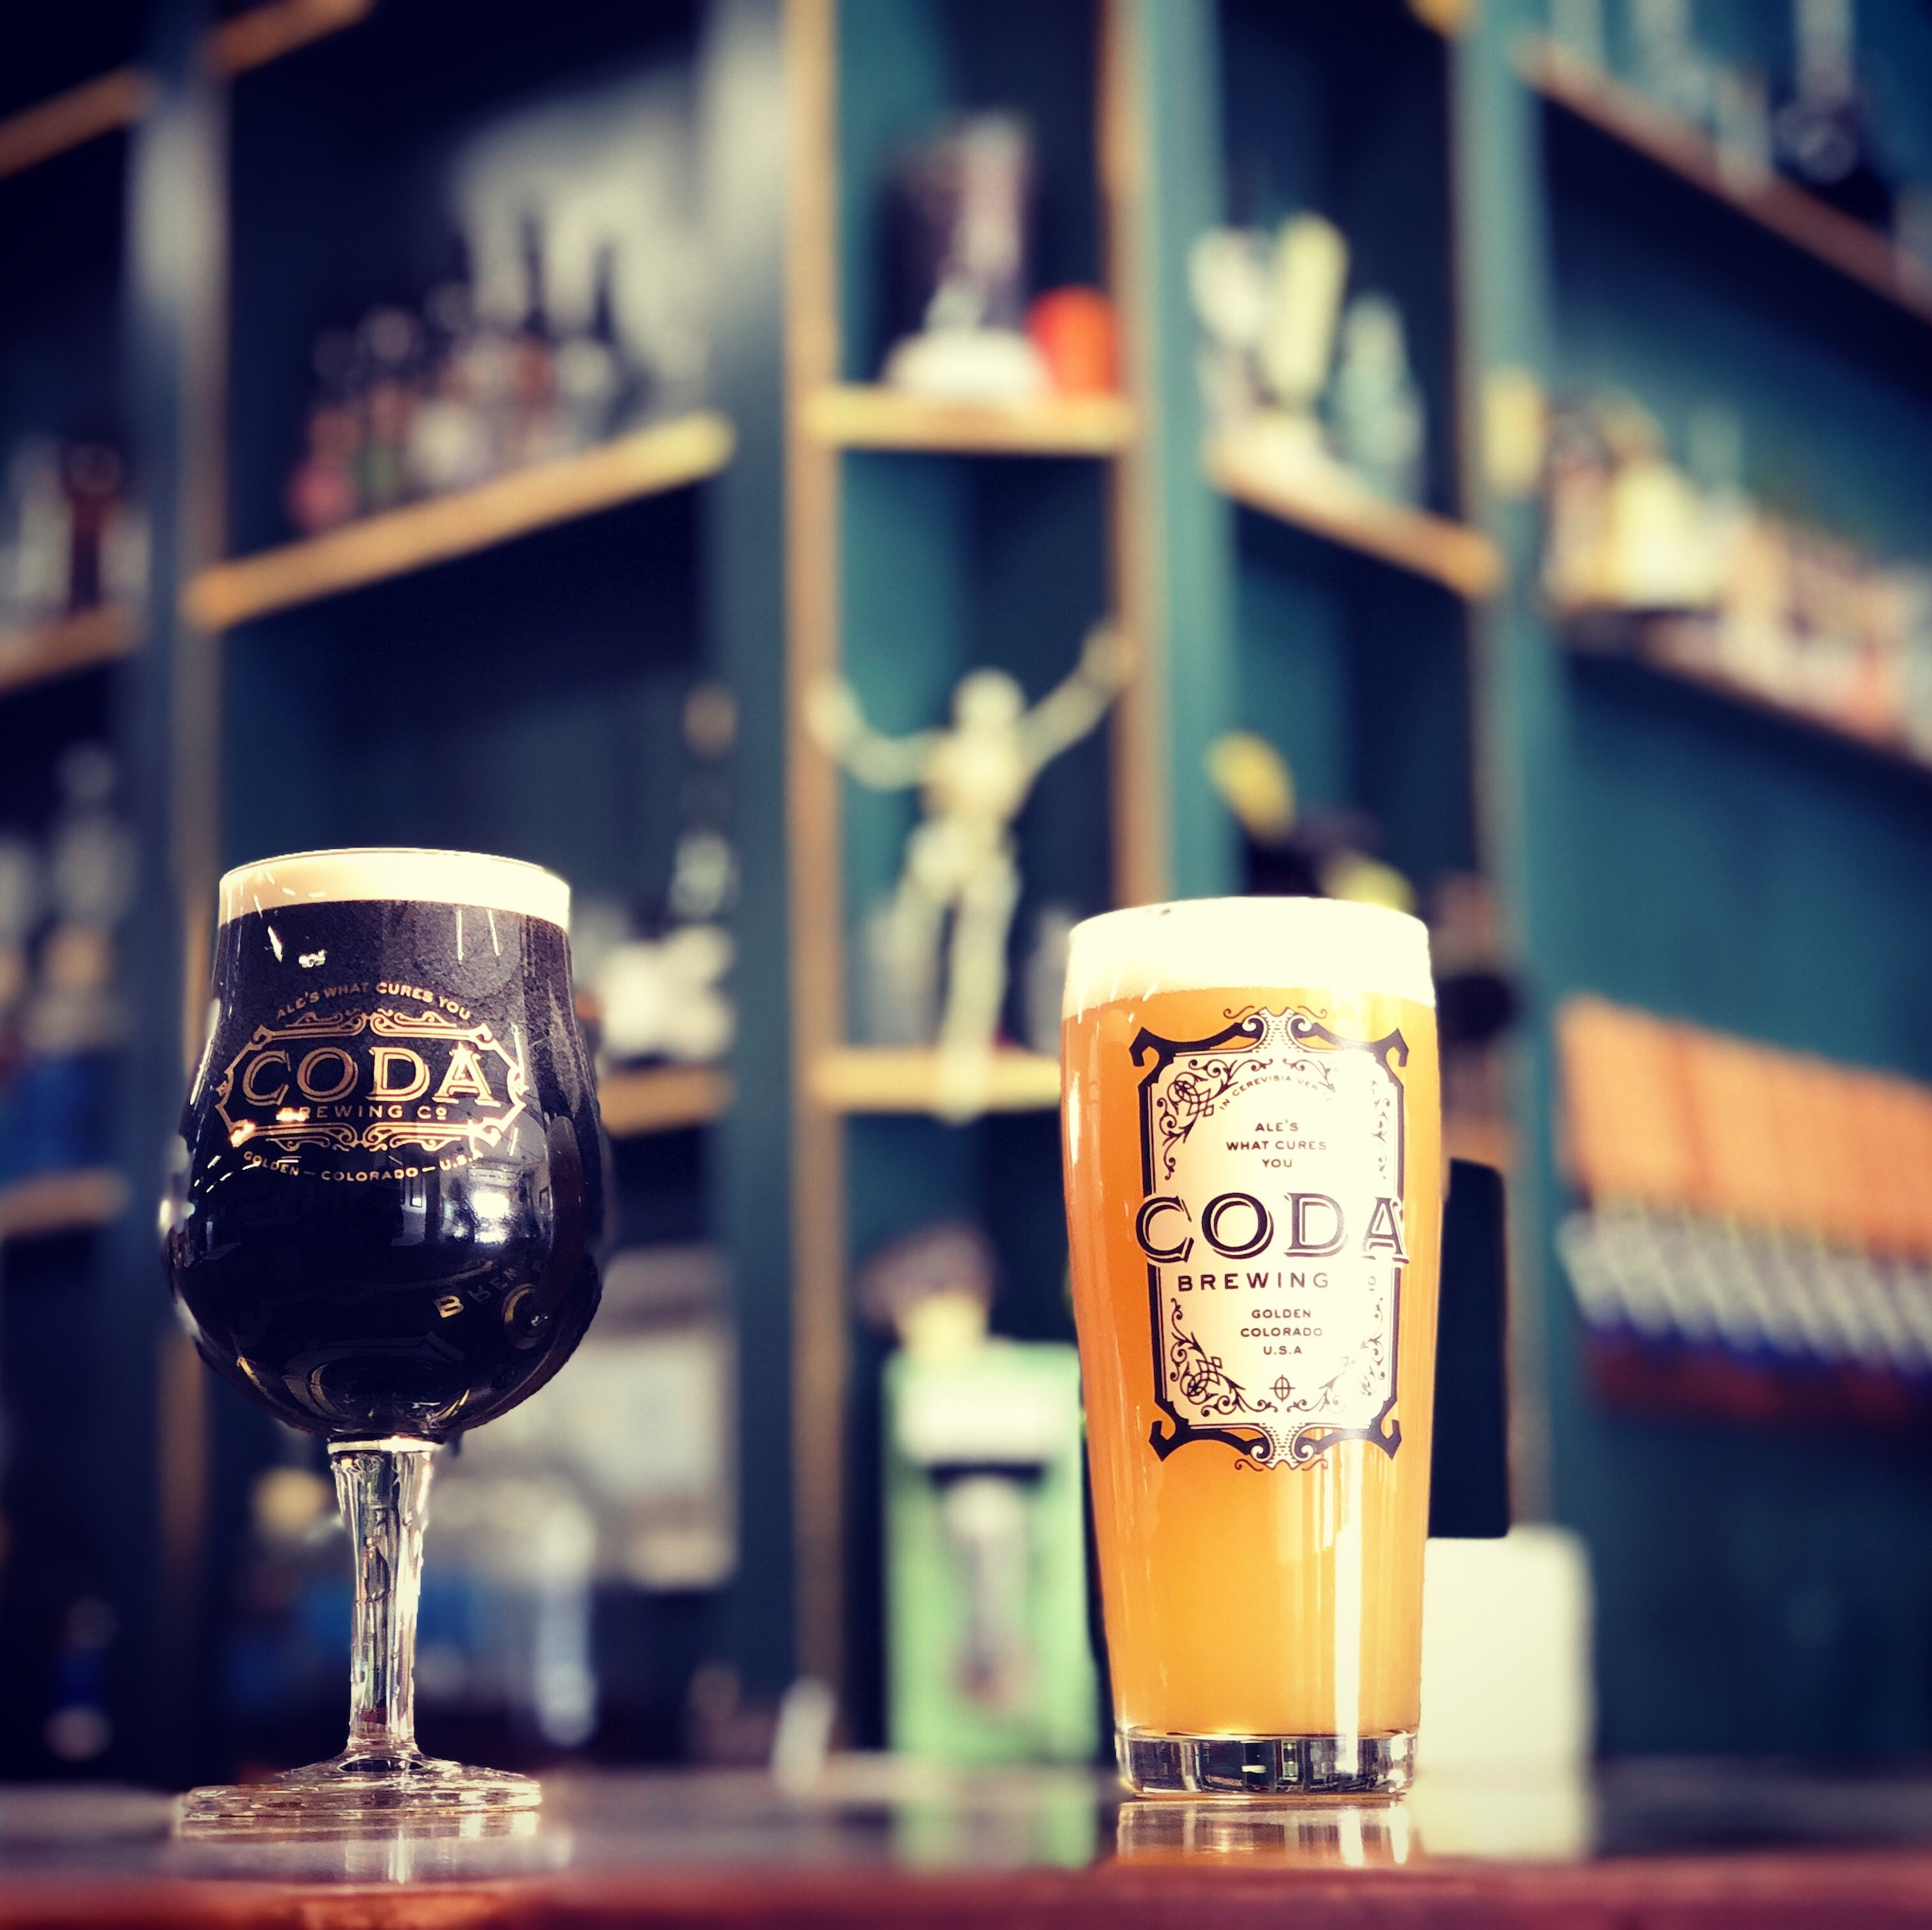 CODA Brewing